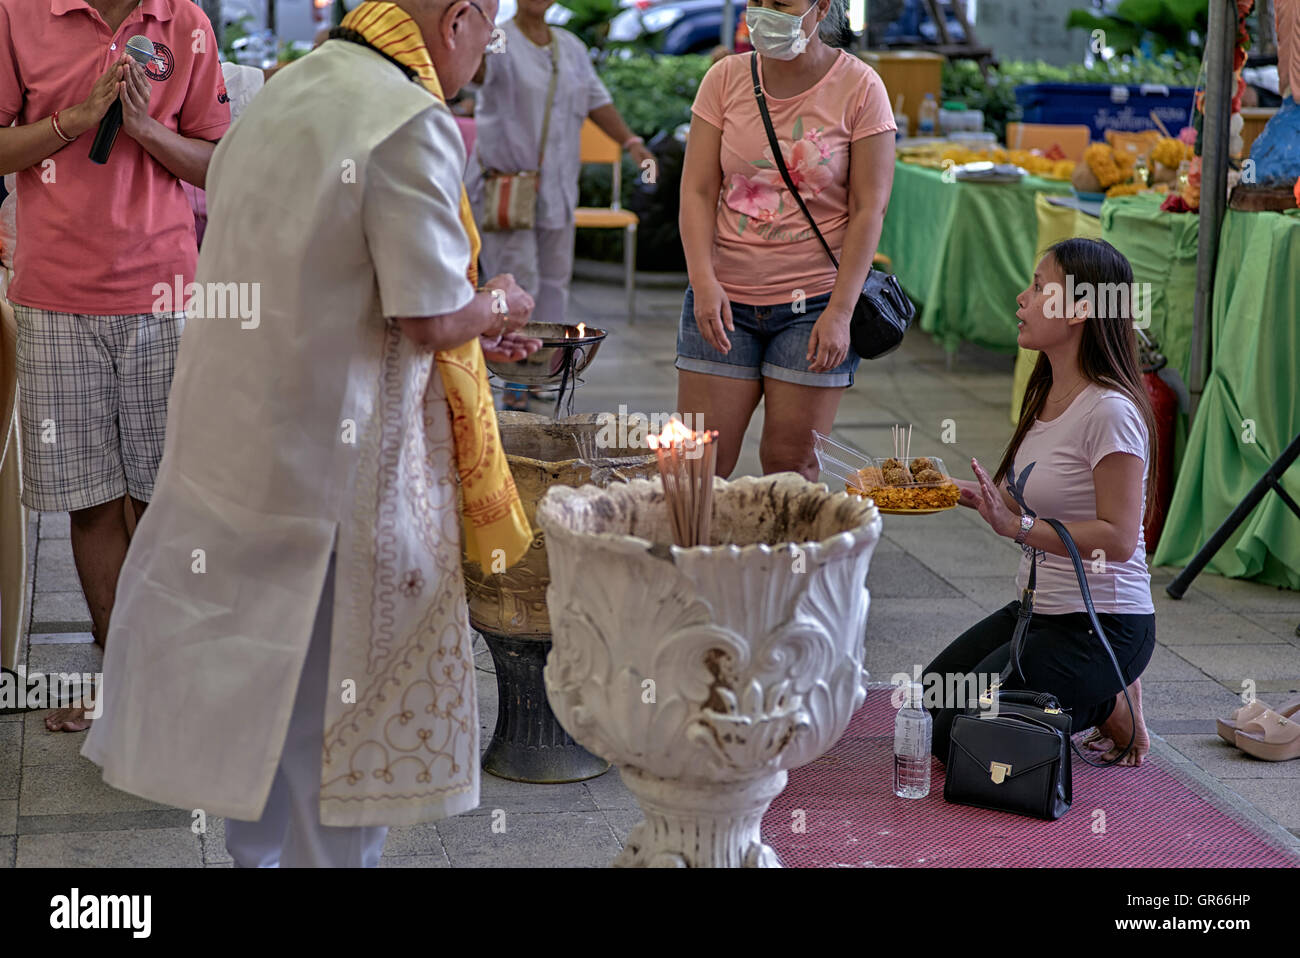 Thai woman kneeling and offering merit at a Buddhist shrine. Thailand S. E. Asia - Stock Image